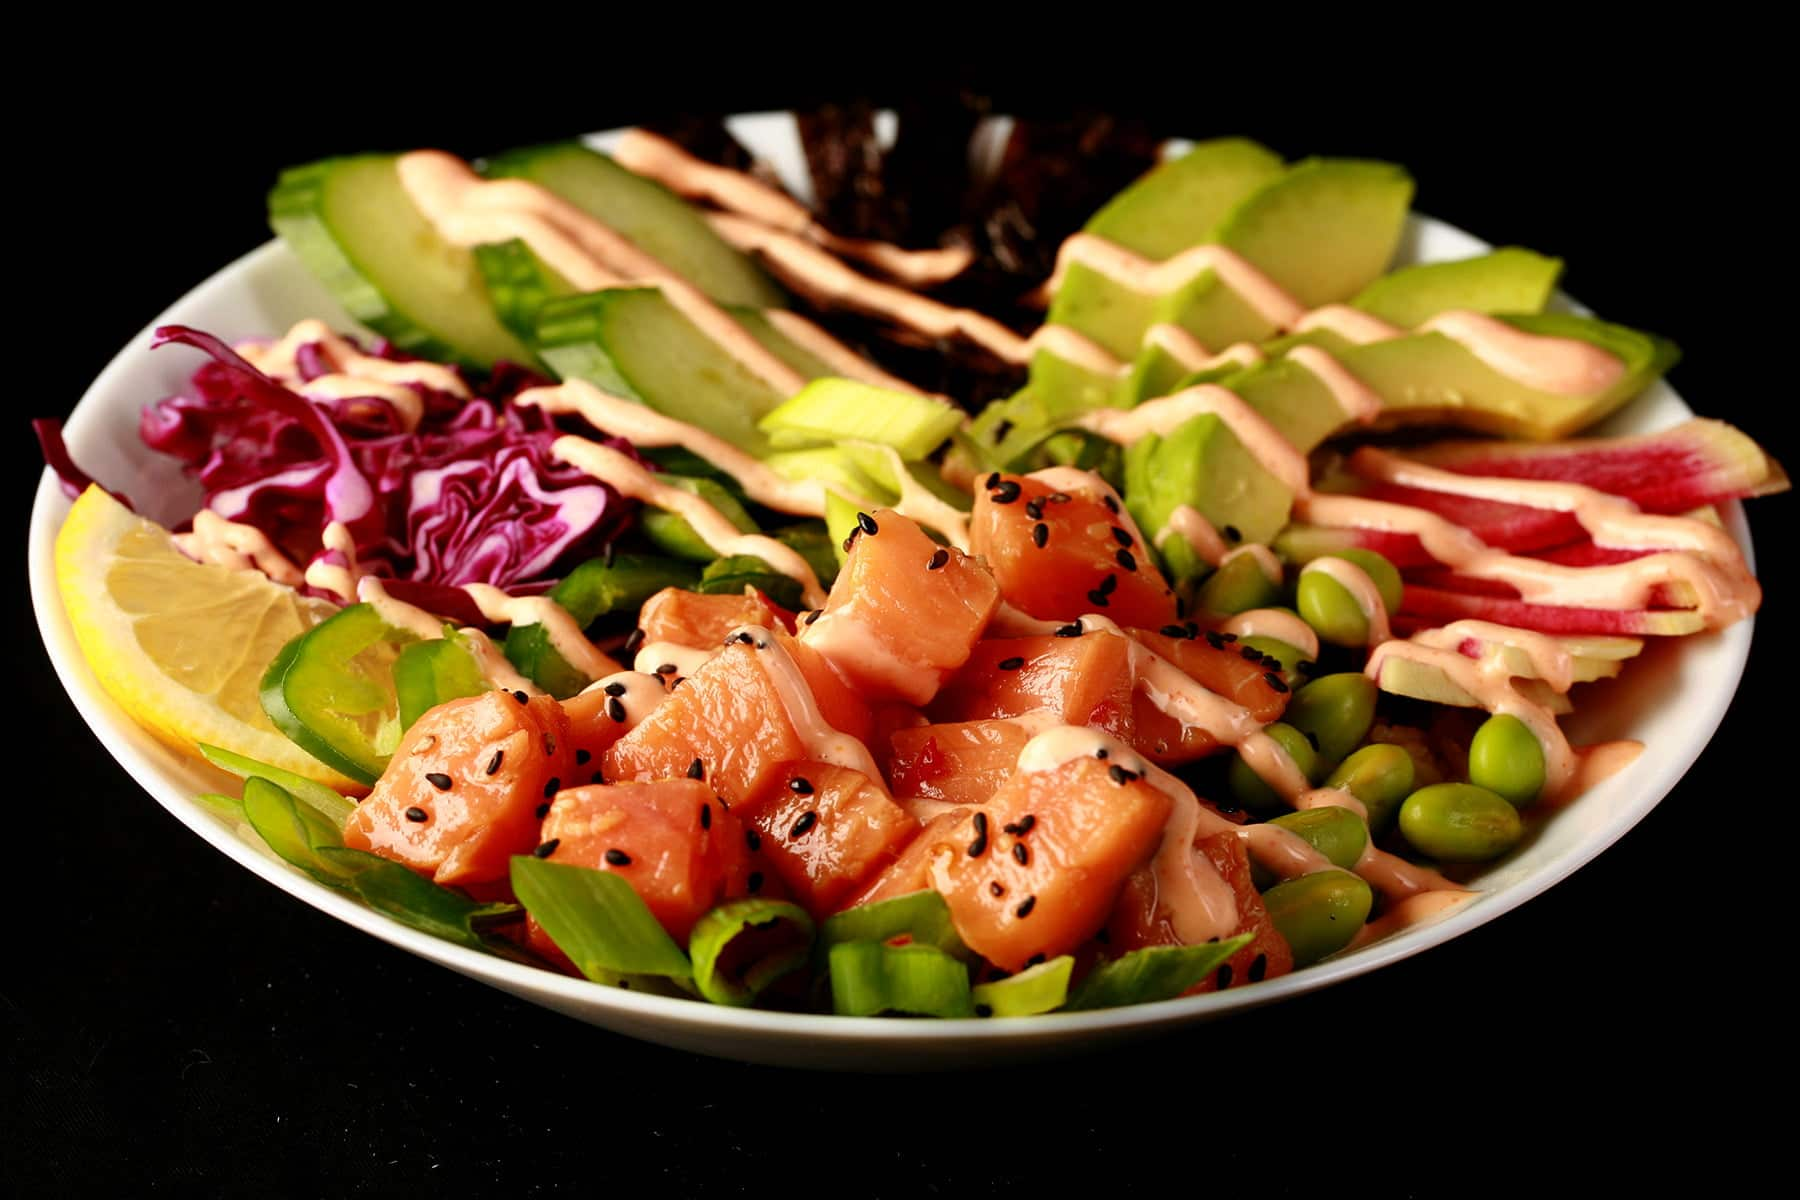 lose up view of a spicy salmon poke bowl - chunks of marinated salmon and veggies, drizzled with a light pink dynamite sauce.